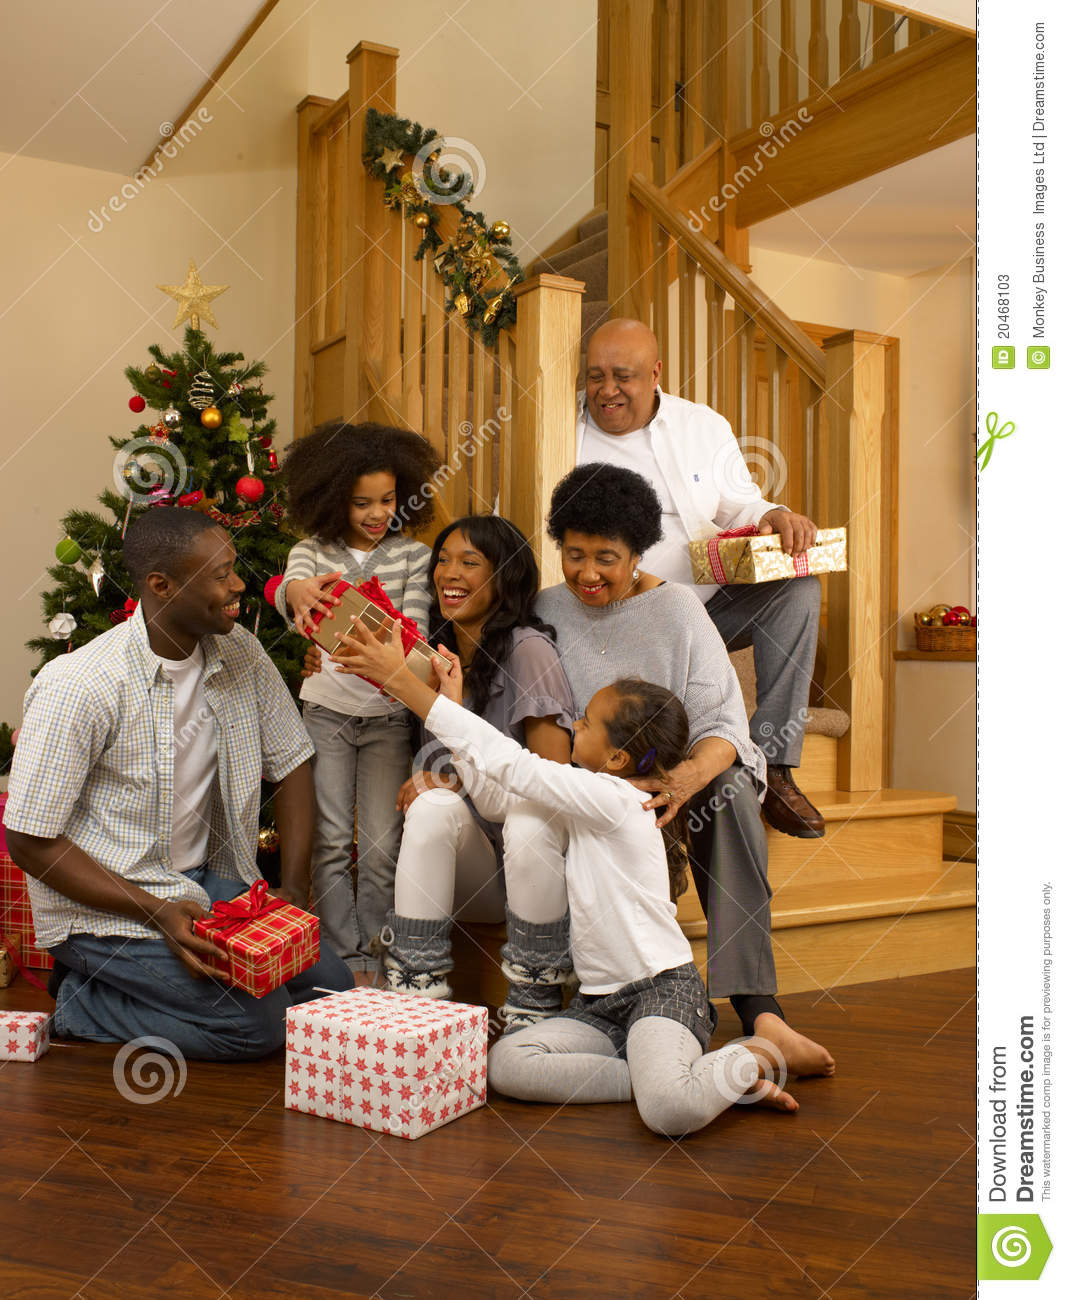 Tradition of exchanging christmas gifts